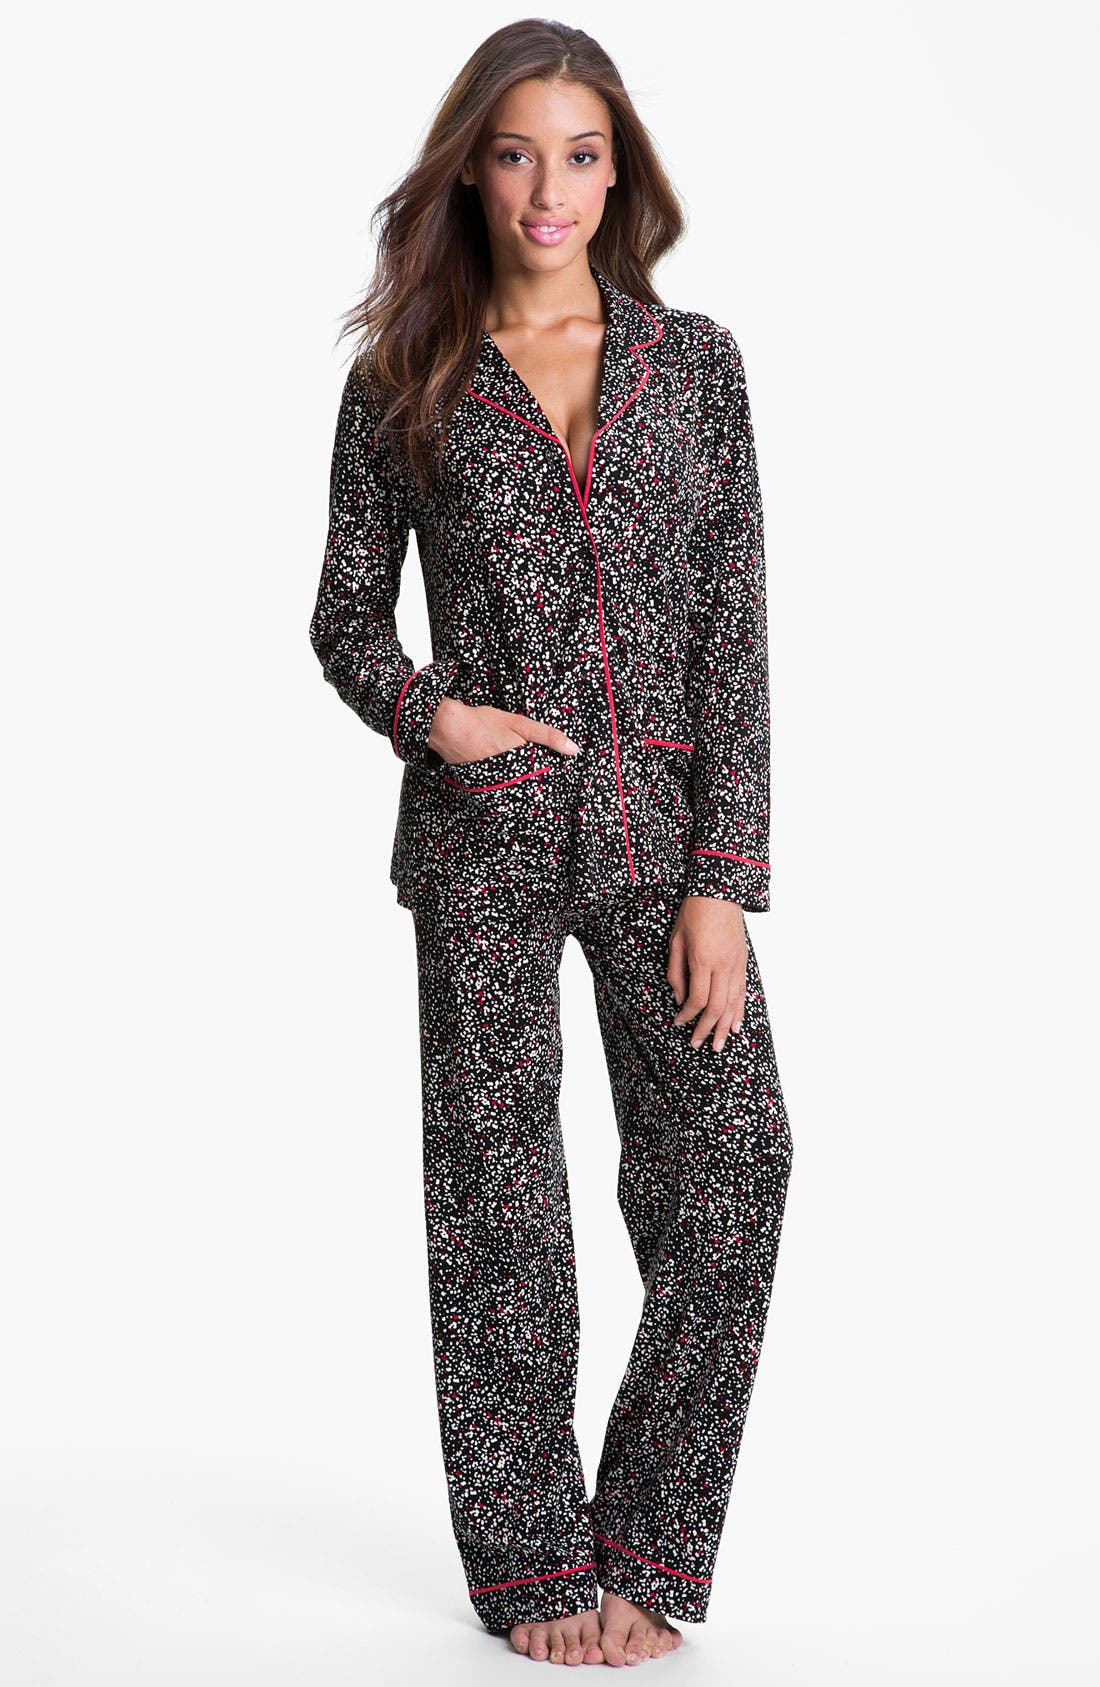 Alternate Image 1 Selected - DKNY Patterned Knit Pajamas